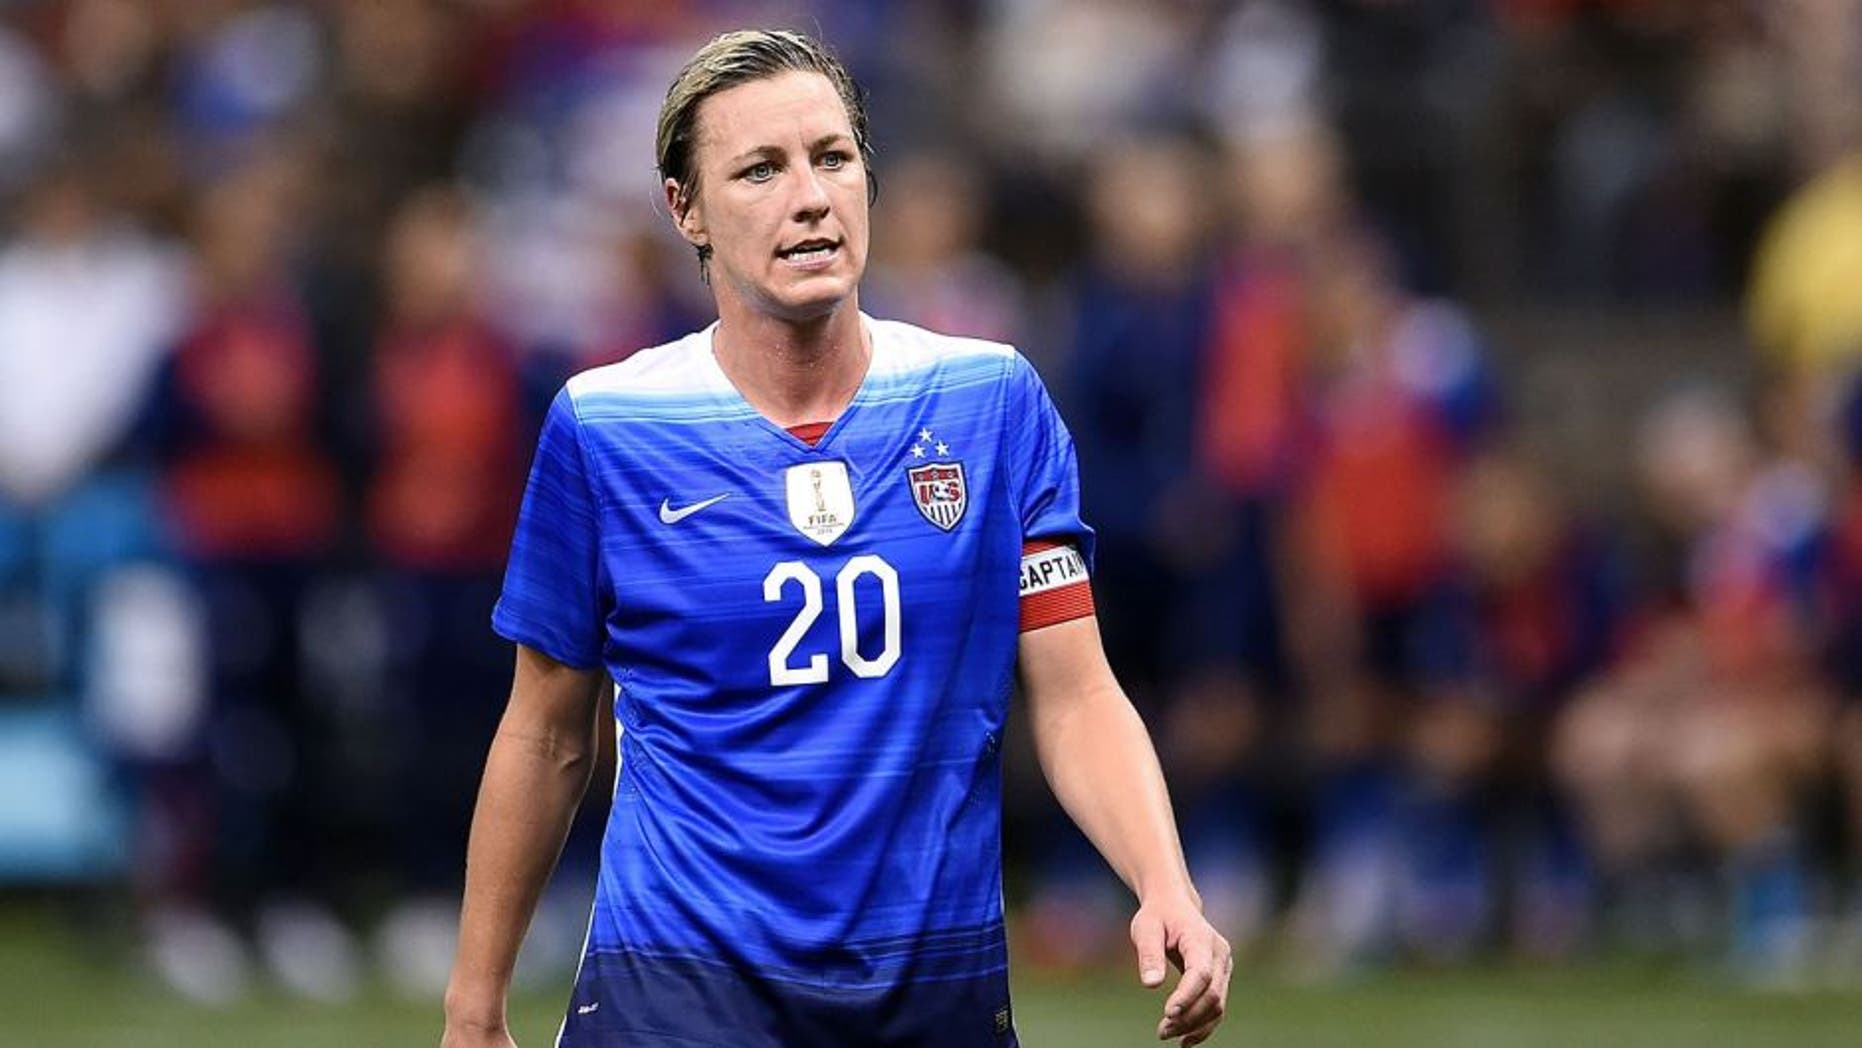 NEW ORLEANS, LA - DECEMBER 16: Abby Wambach #20 of the United States walks off the field at halftime during the women's soccer match against China at the Mercedes-Benz Superdome on December 16, 2015 in New Orleans, Louisiana. China defeated the United States 1-0. (Photo by Stacy Revere/Getty Images)